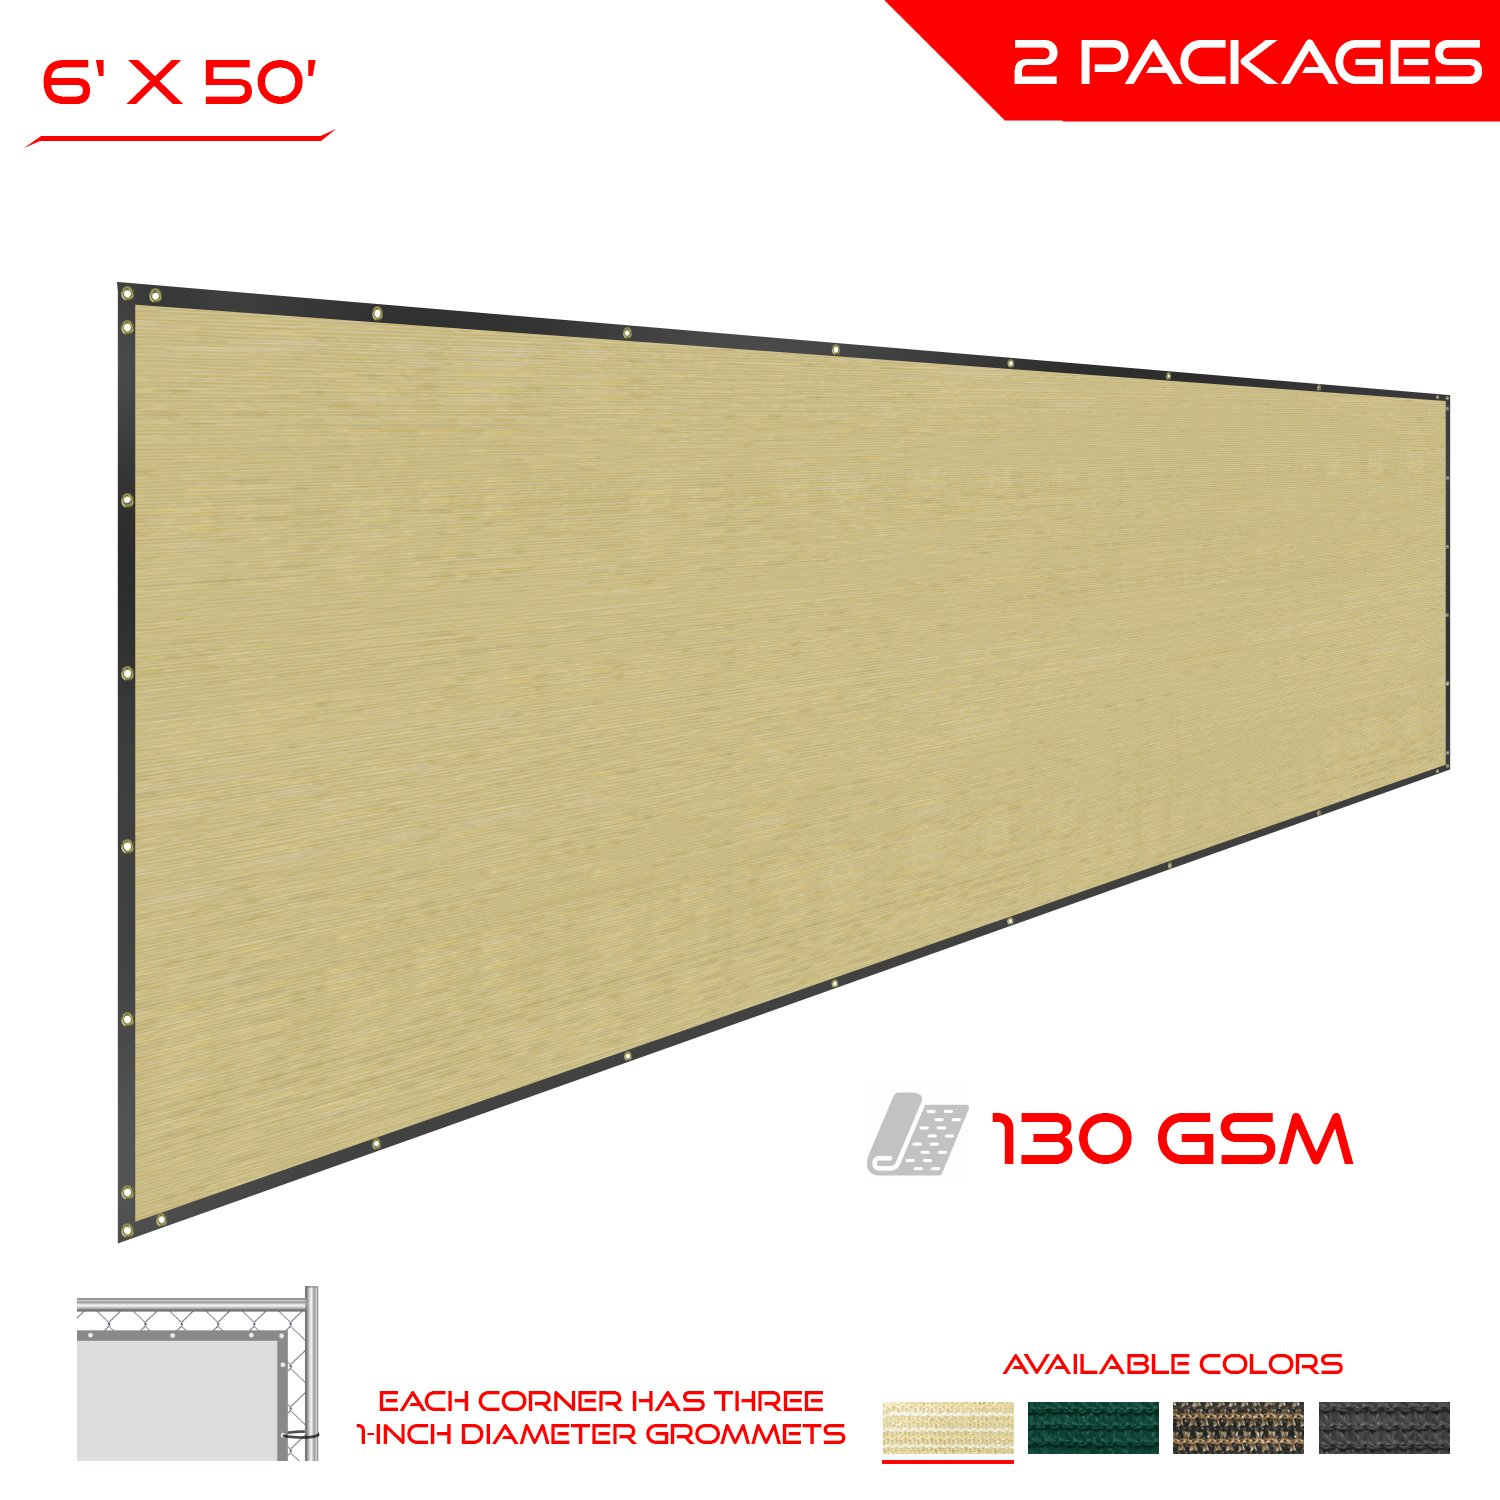 The Patio Shop Privacy Fence Screen 6' x 50' Commercial Outdoor Shade Windscreen Mesh Fabric with brass Gromment 130 GSM 88% Blockage 6' x 50' in color Beige-2 Years Warranty - Set of 2 by The Patio Shop